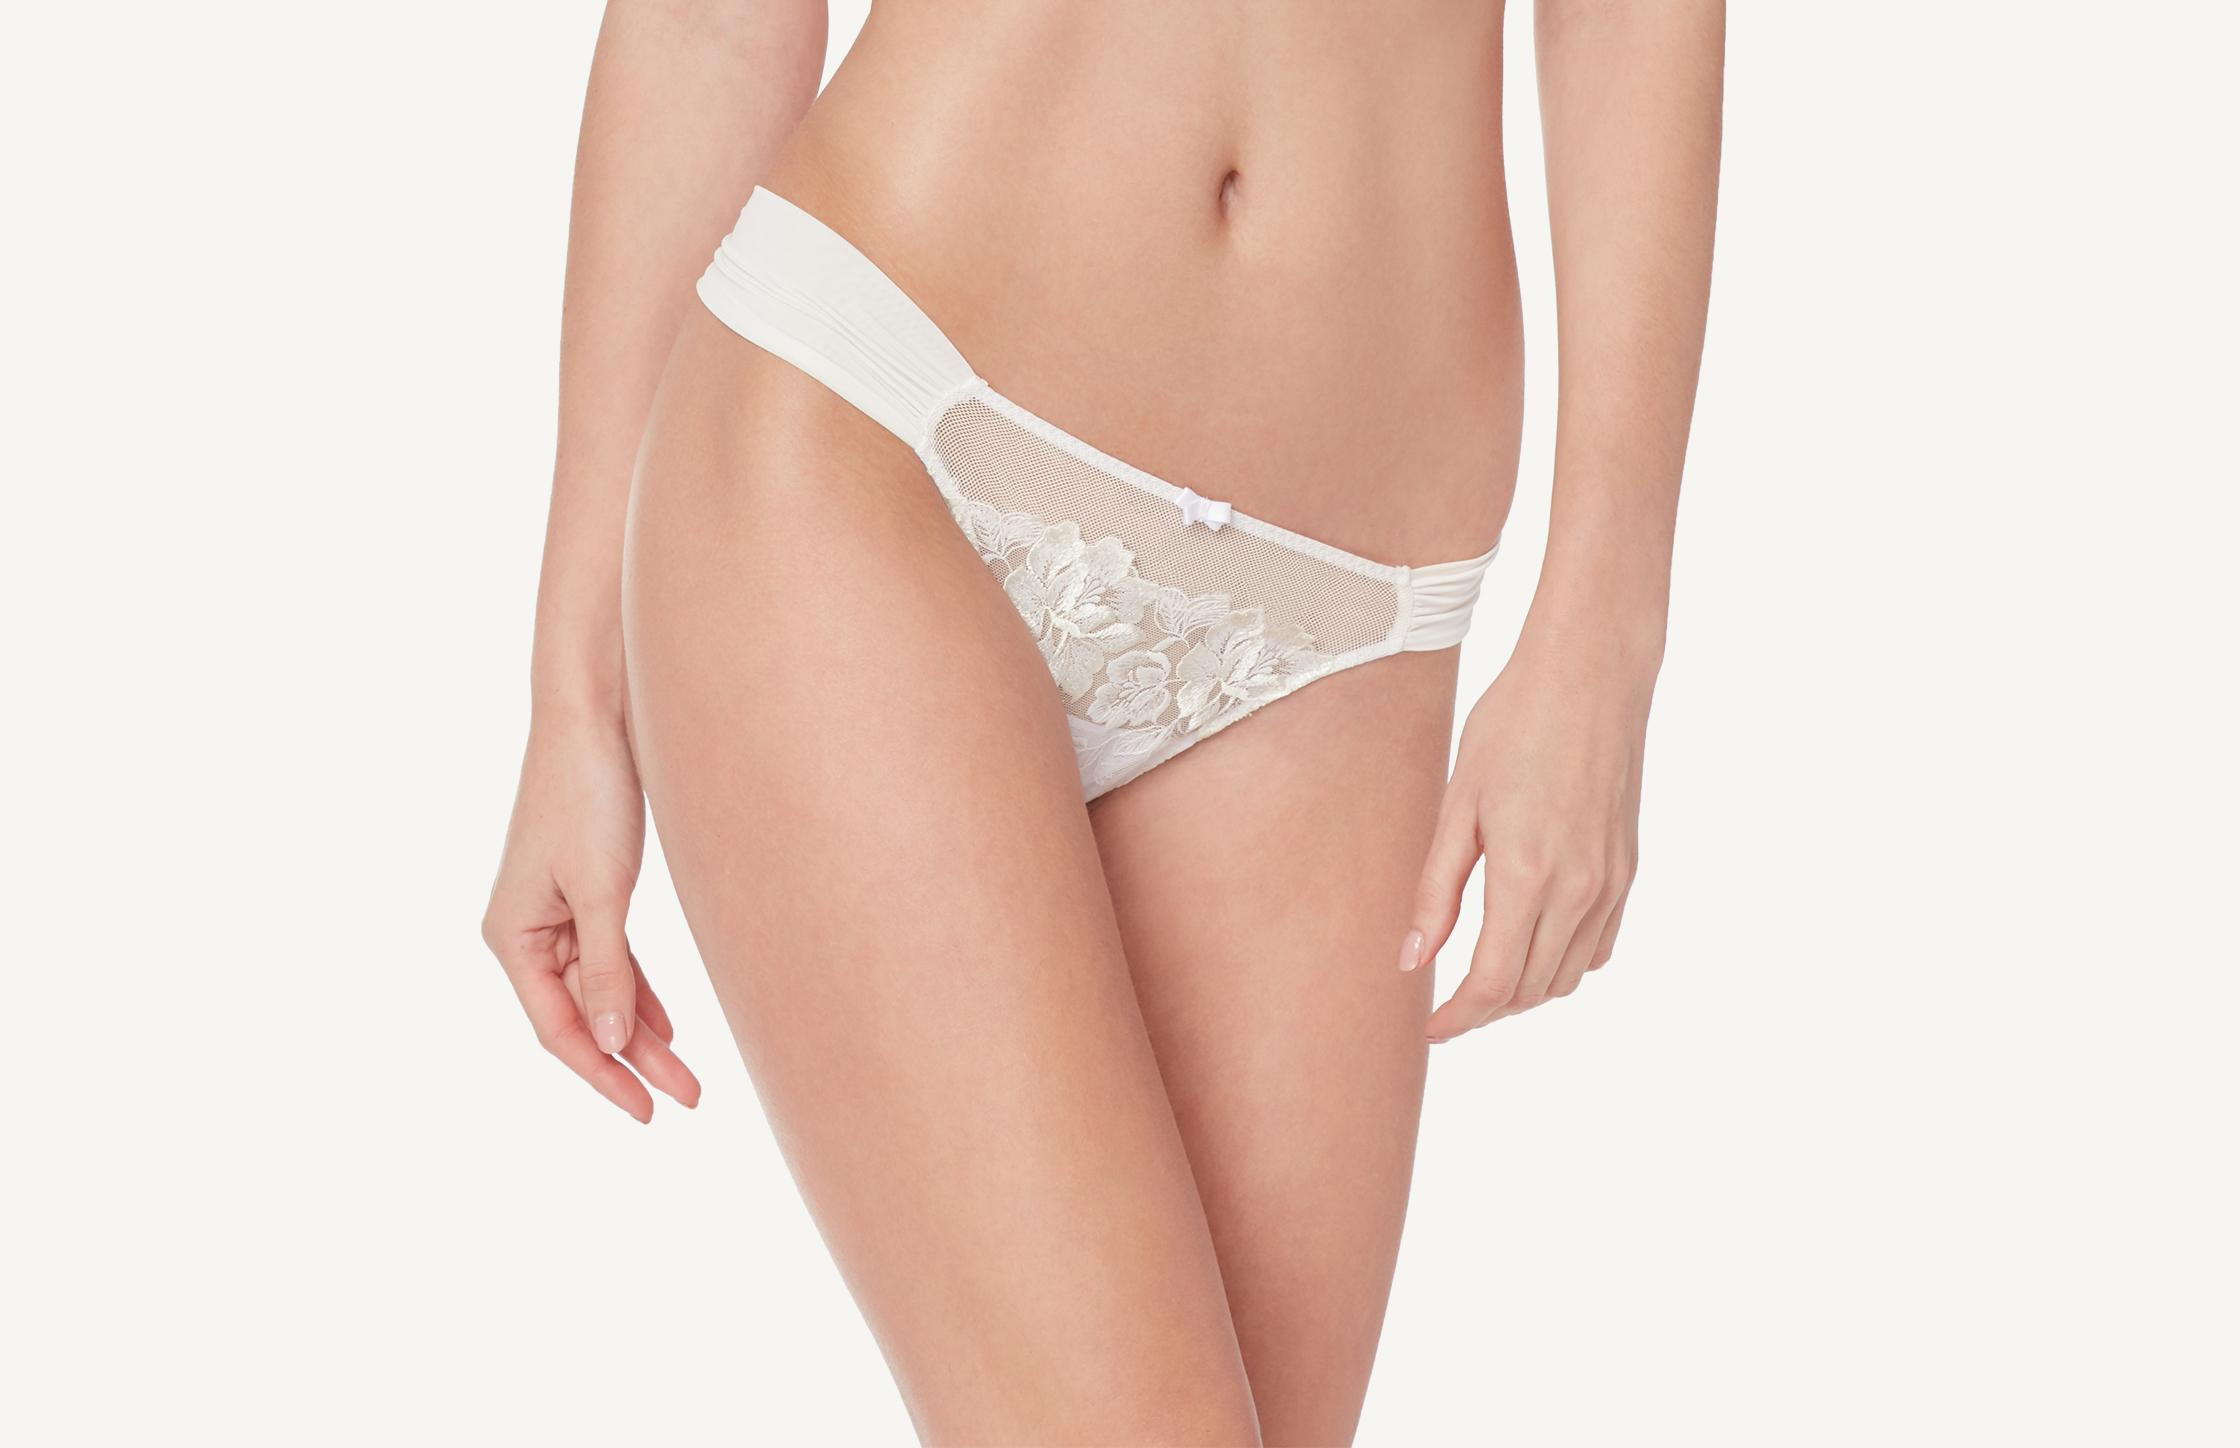 intimissimi - Brazilian-Slip Blooming Embroidery